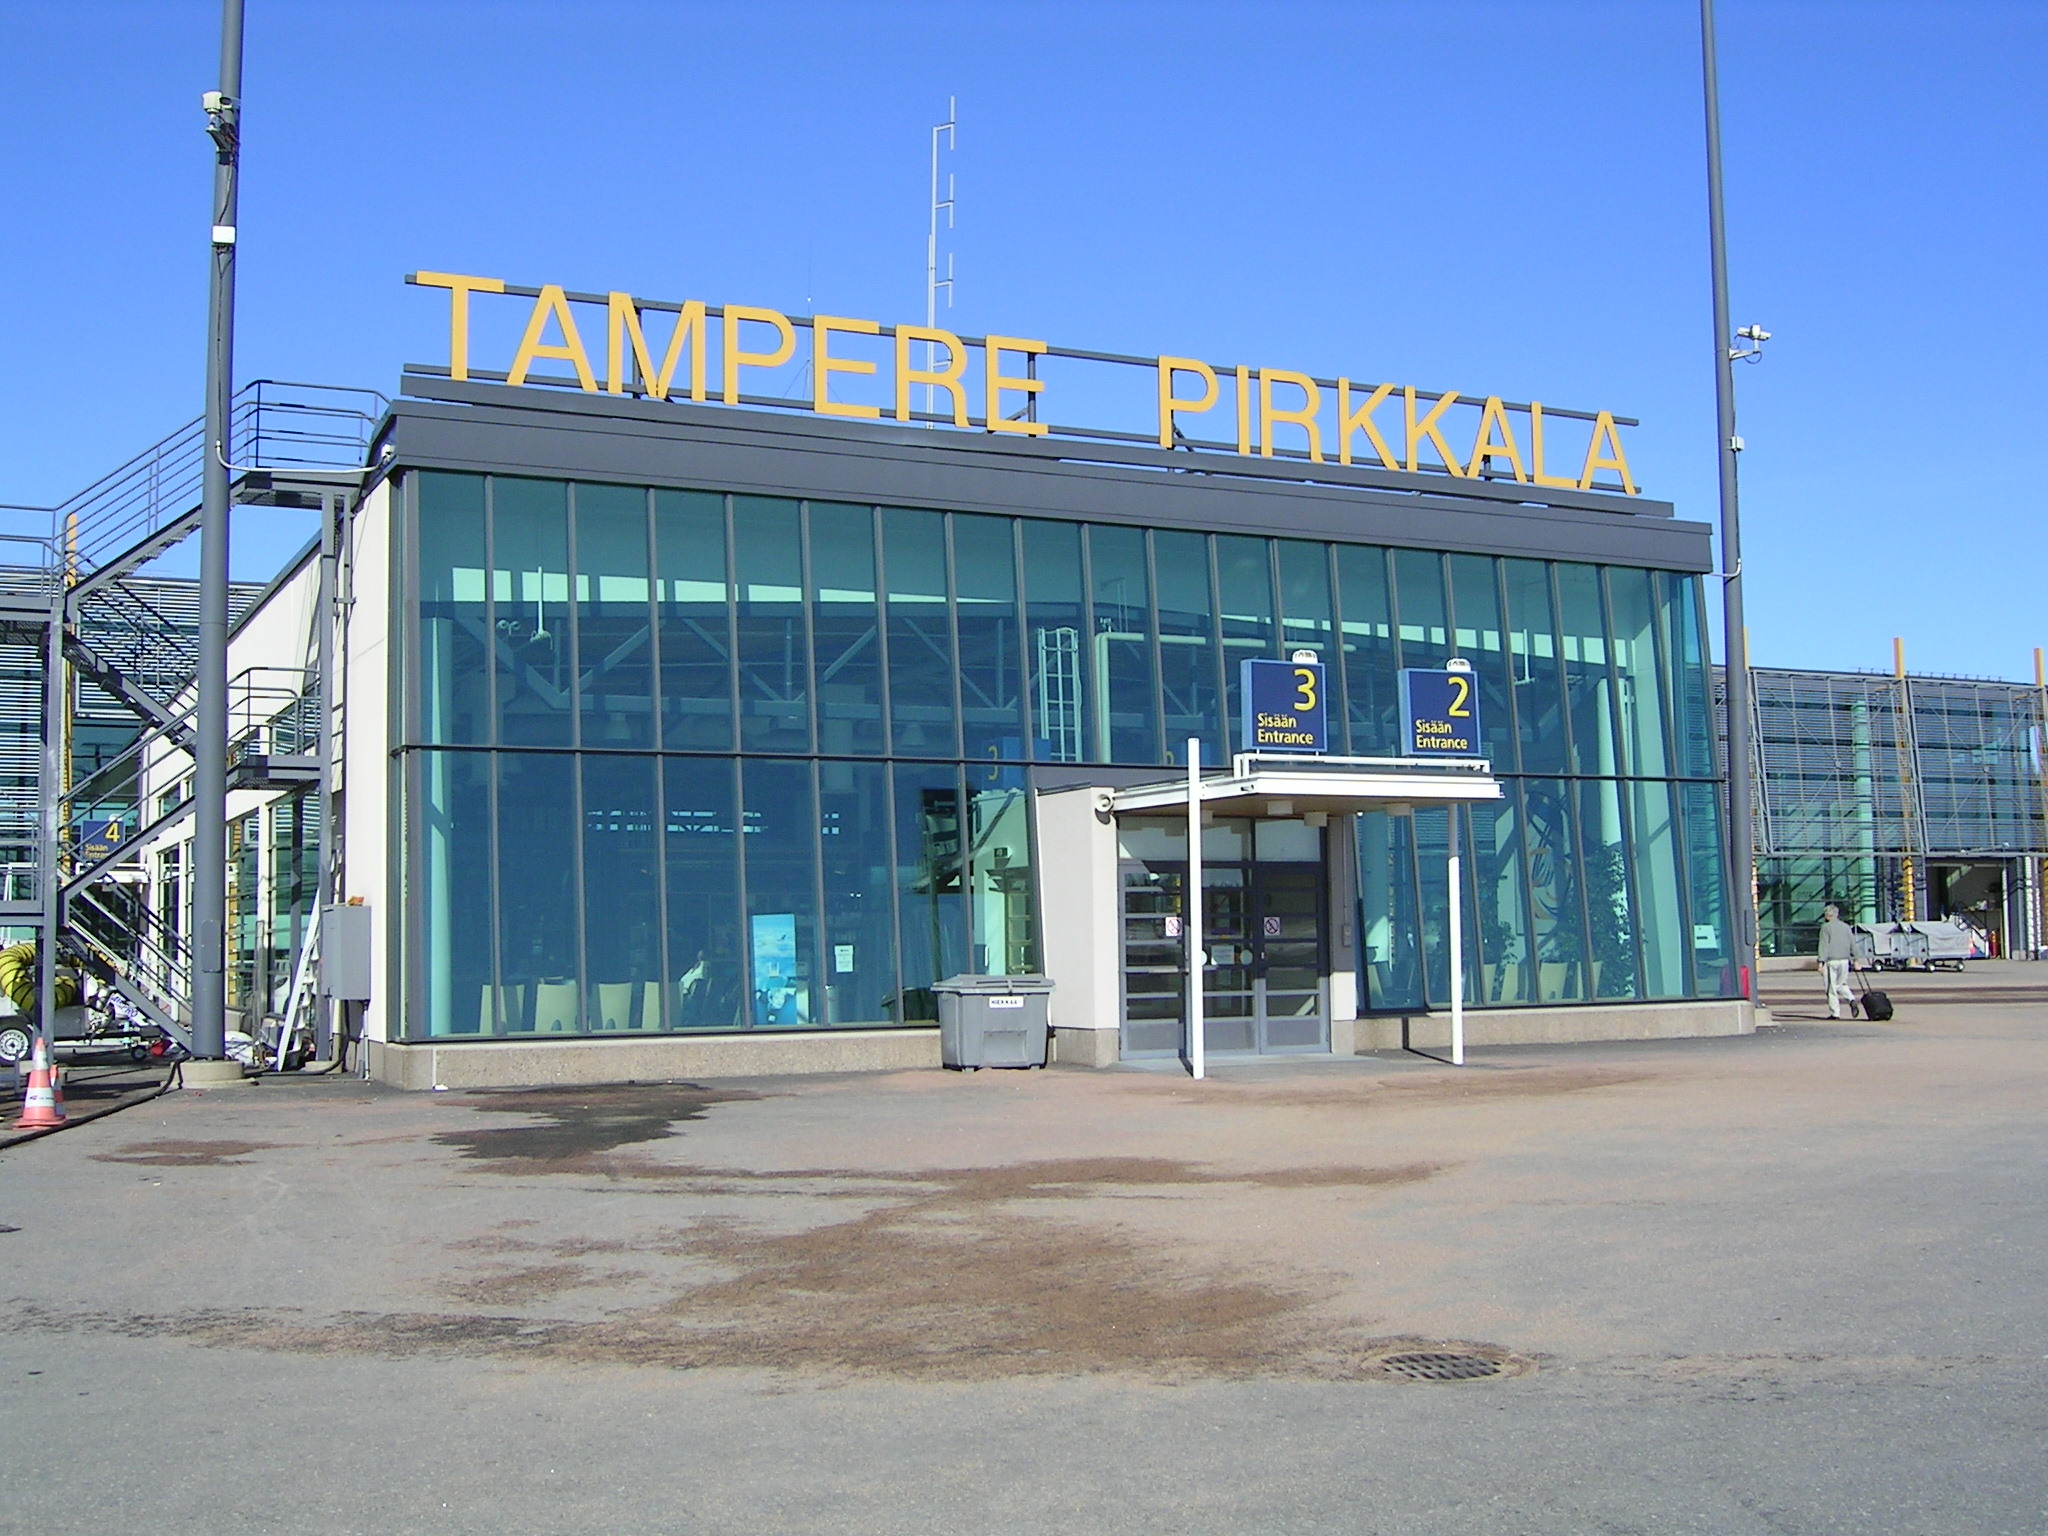 Tampere Finland  City pictures : Tampere Pirkkala Airport Finland Wikimedia Commons